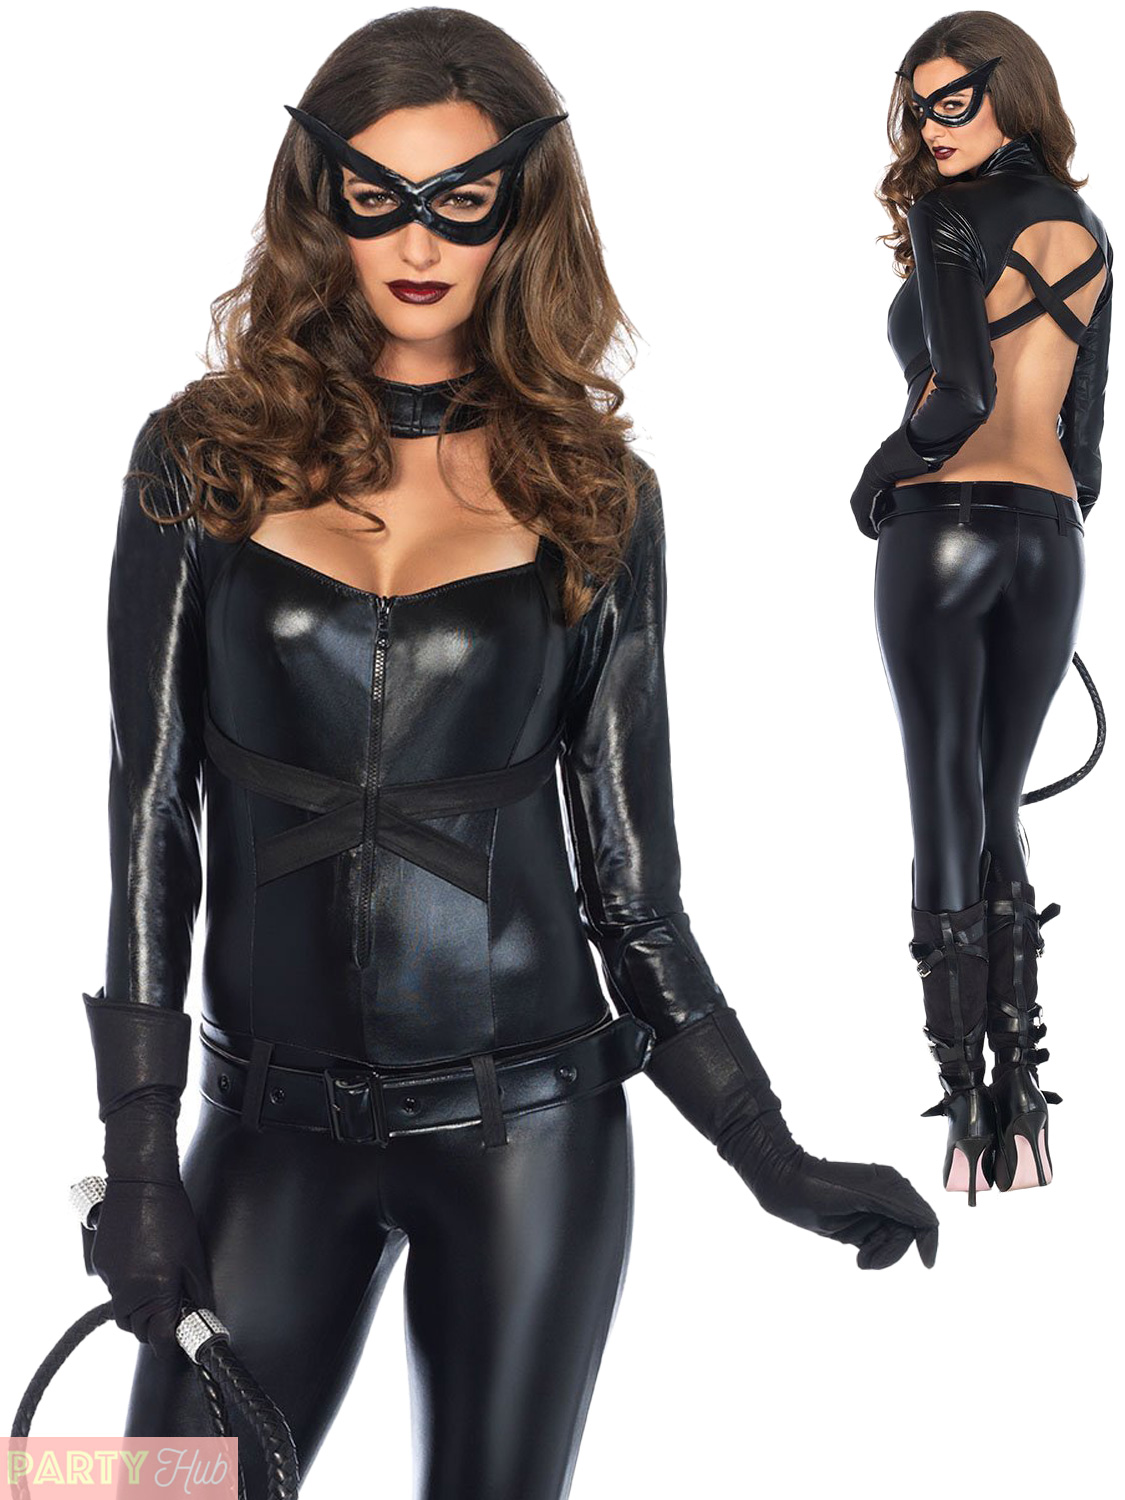 fc15381e55 Ladies Cat Women Catsuit Costume Leg Avenue Halloween Fancy Dress ...